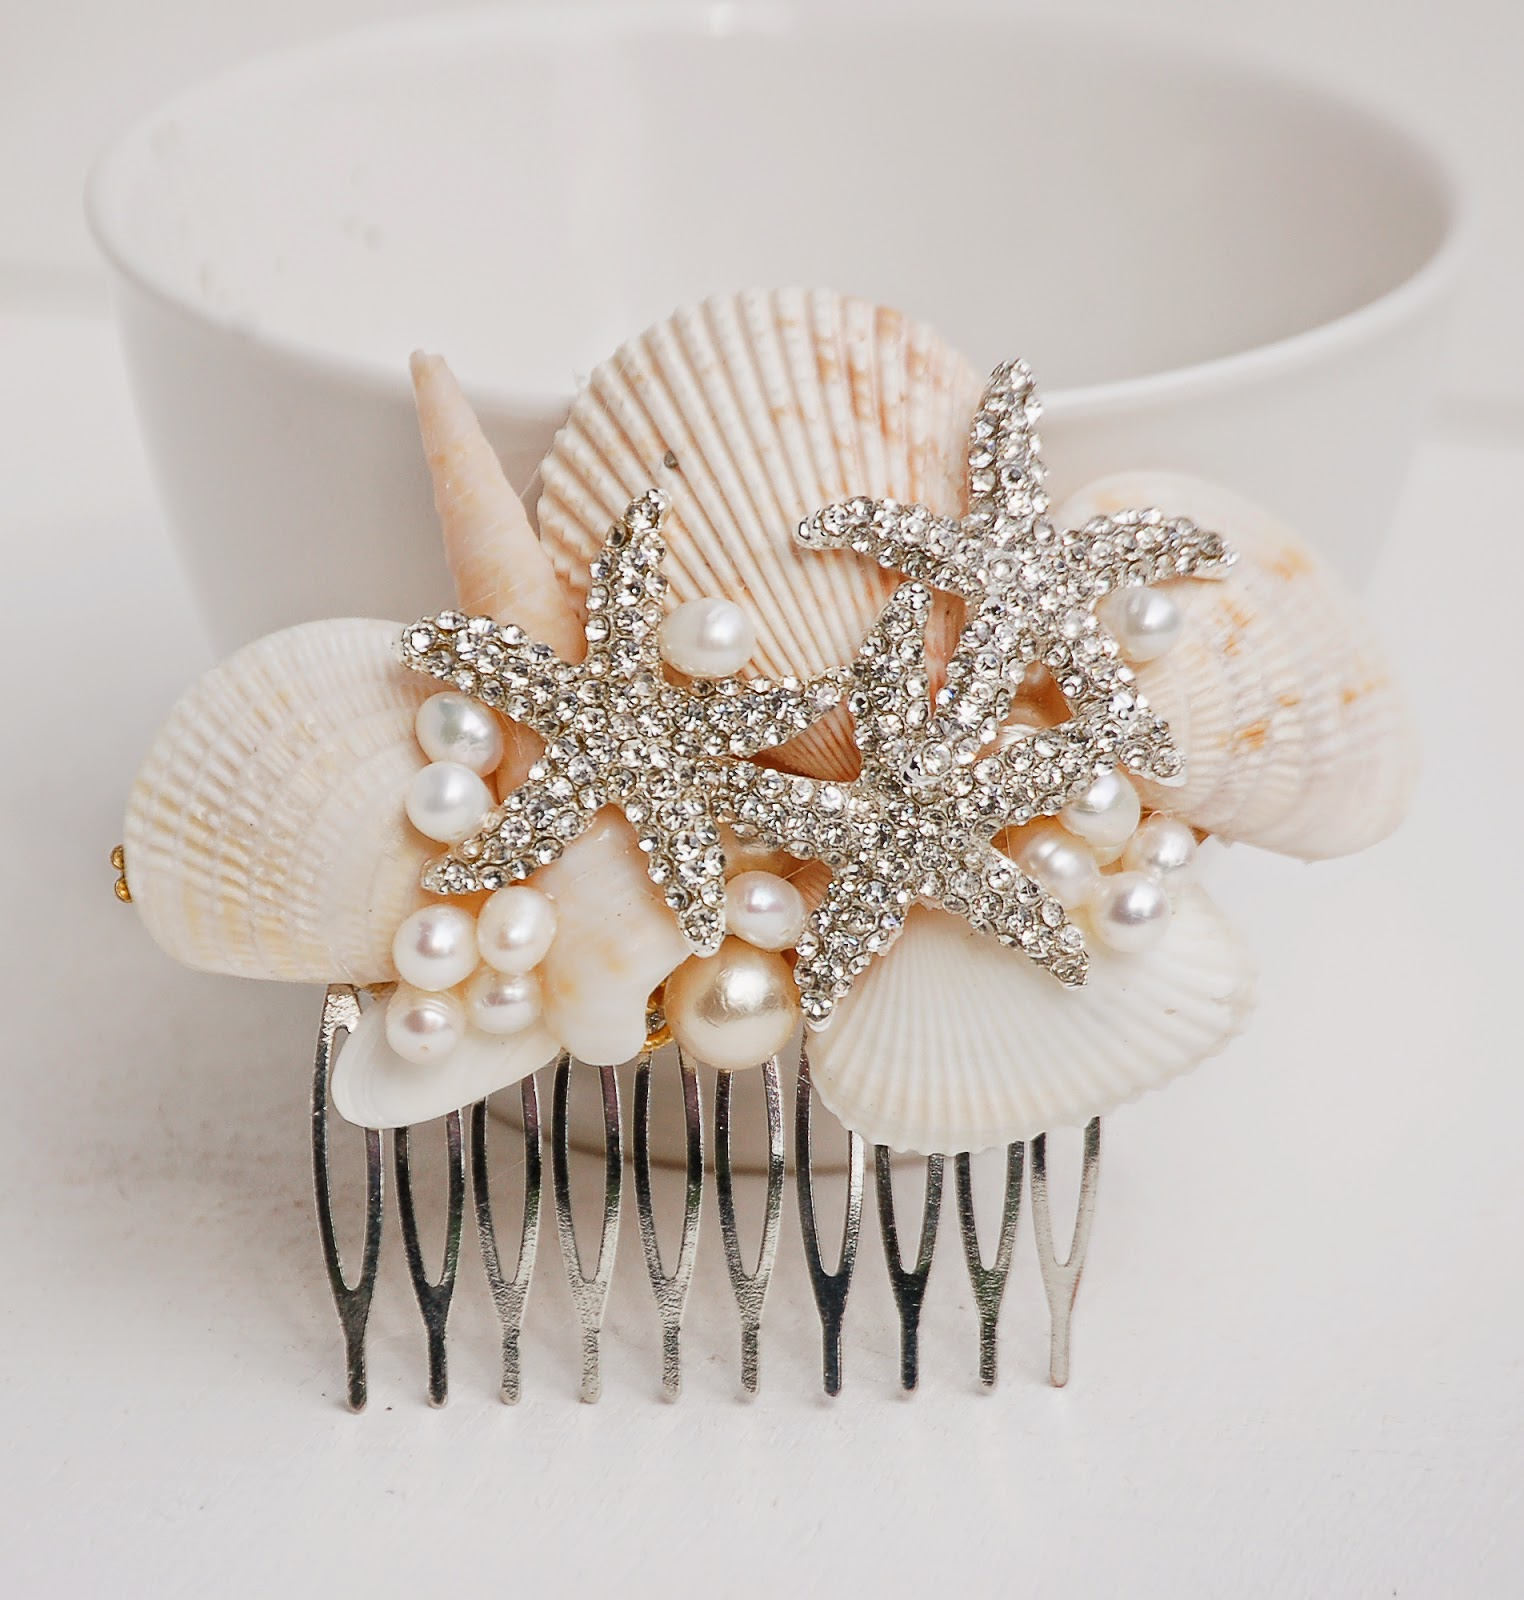 https://www.etsy.com/listing/224615160/bridal-hair-comb-sea-shell-hair?ref=shop_home_active_2&ga_search_query=shell